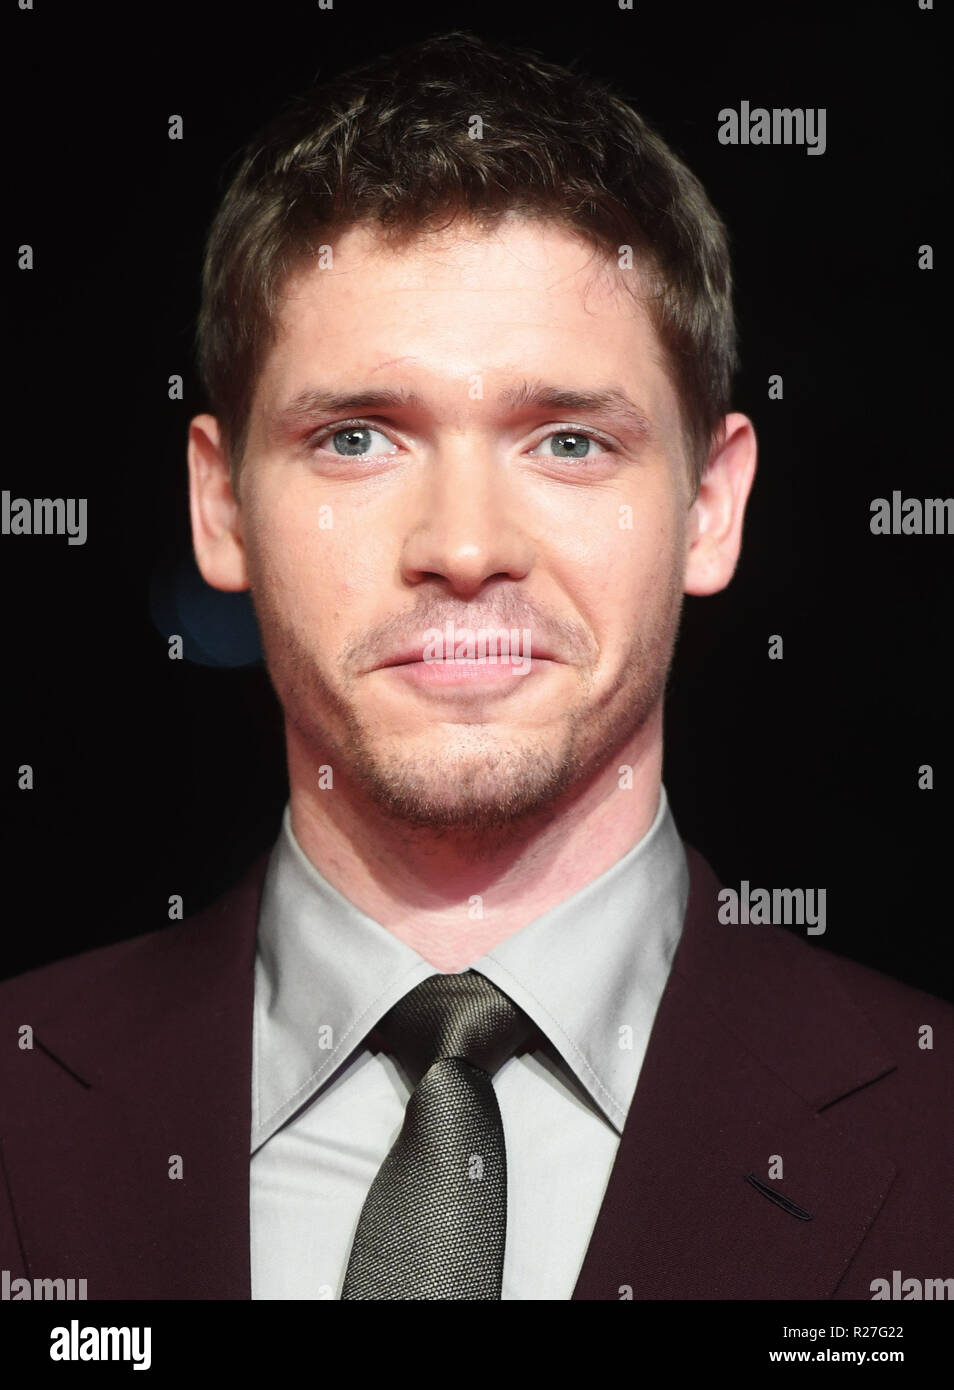 62nd London Film Festival - The Outllaw King - Premiere  Featuring: Billy Howle Where: London, United Kingdom When: 17 Oct 2018 Credit: WENN.com Stock Photo